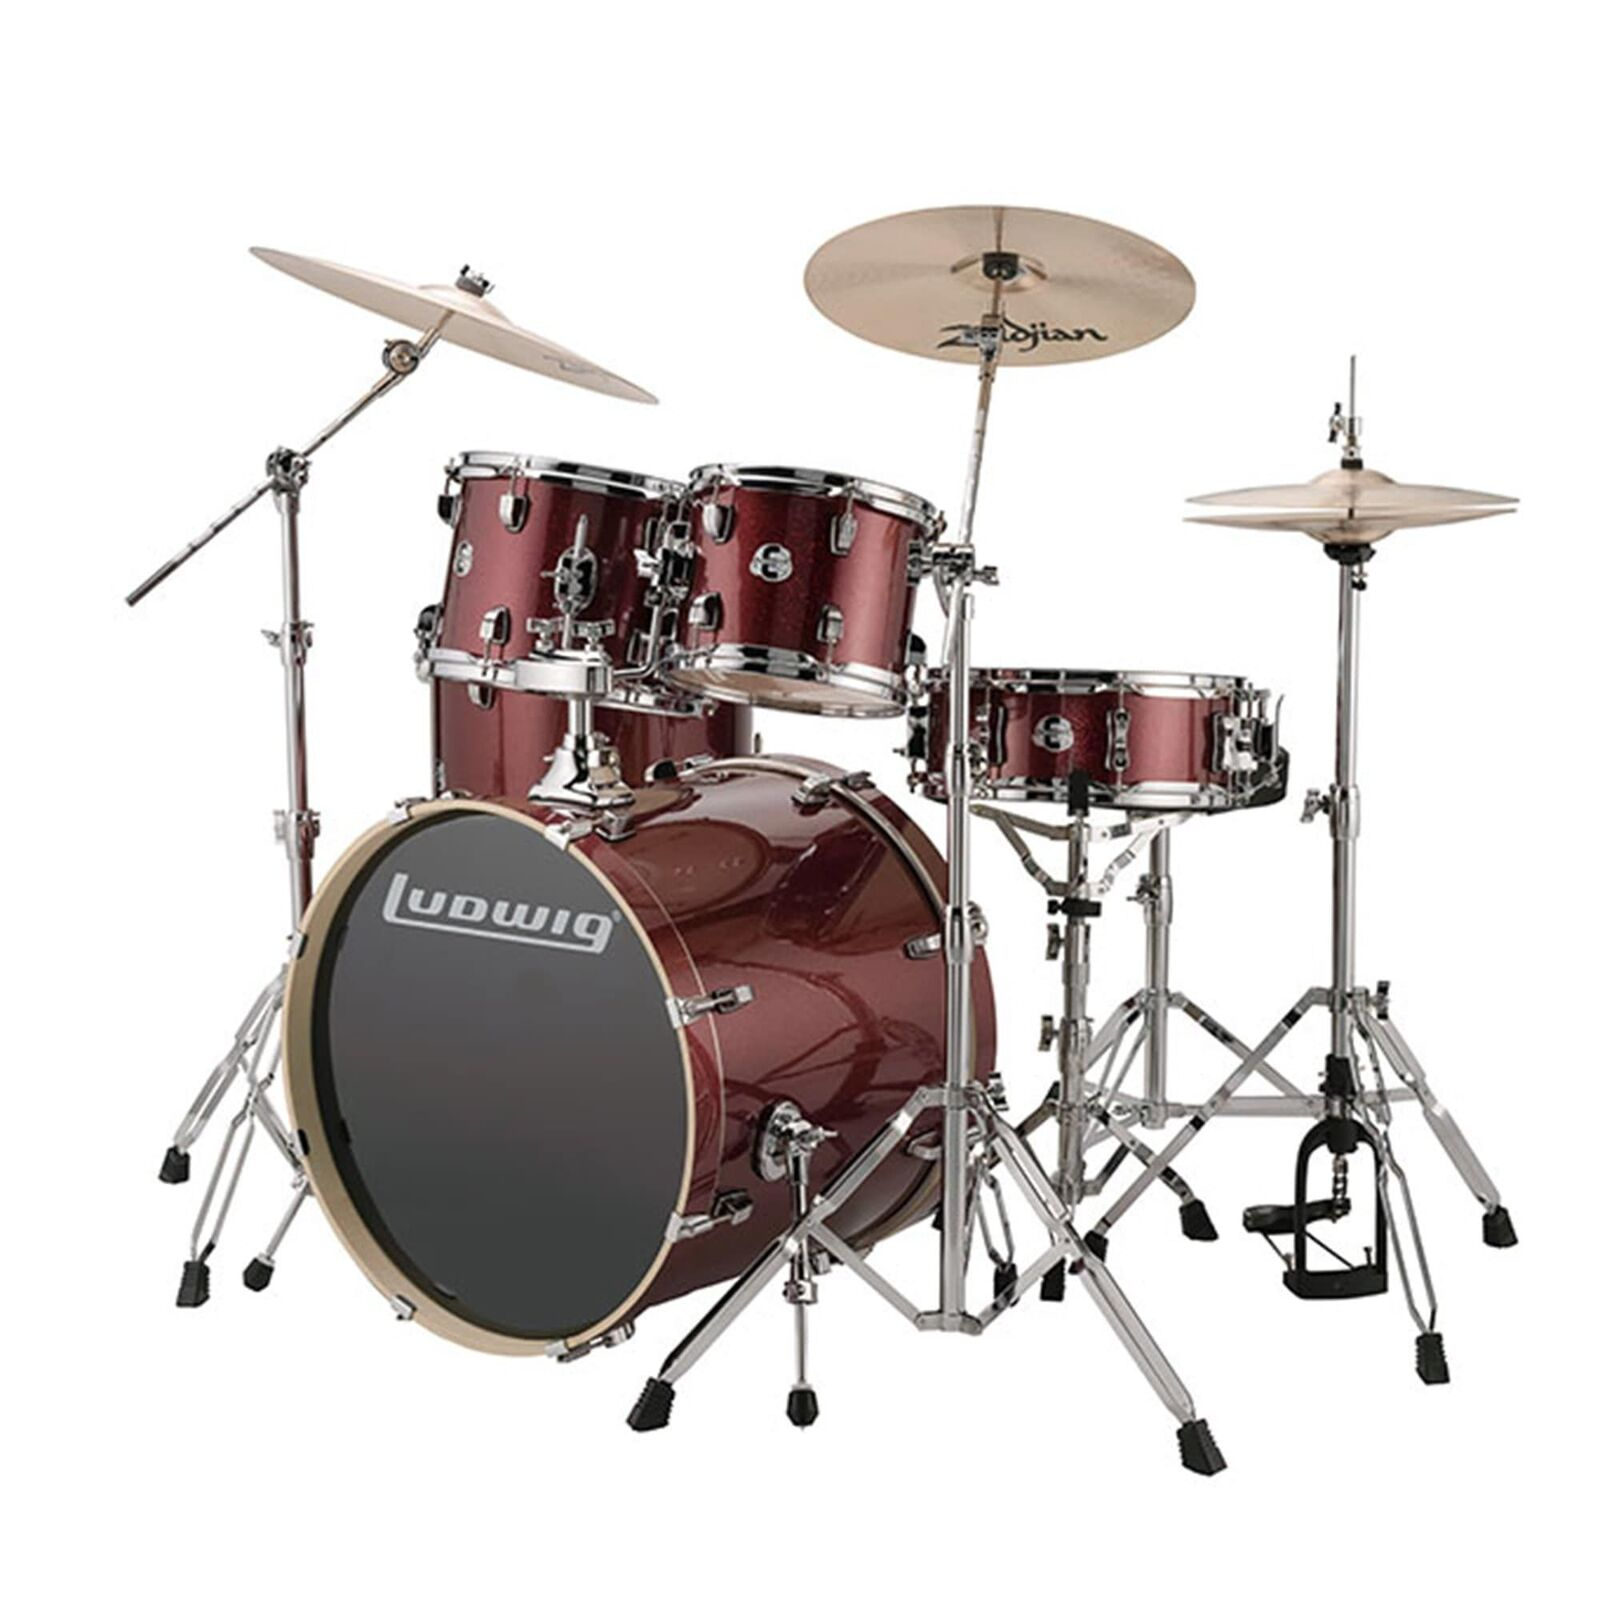 LUDWIG EVOLUTION DRUM KIT - INCLUDES CYMBALS - RED SPARKLE